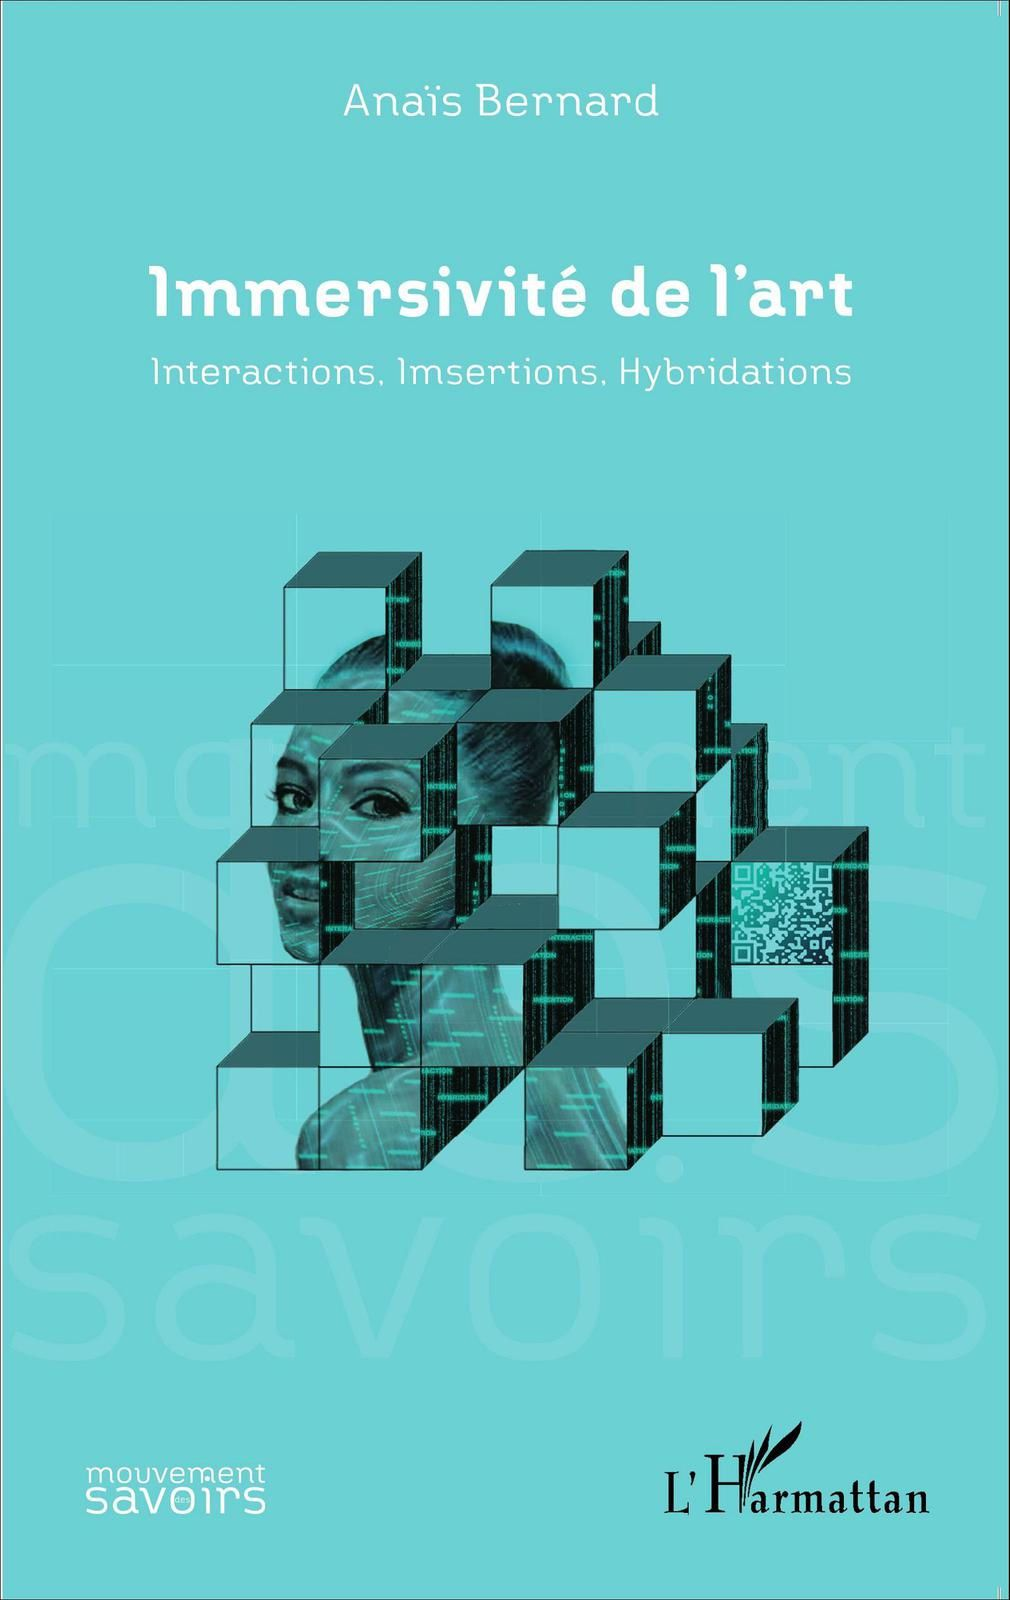 Immersivité de l'Art - Interactions, Imsertions, Hybridations